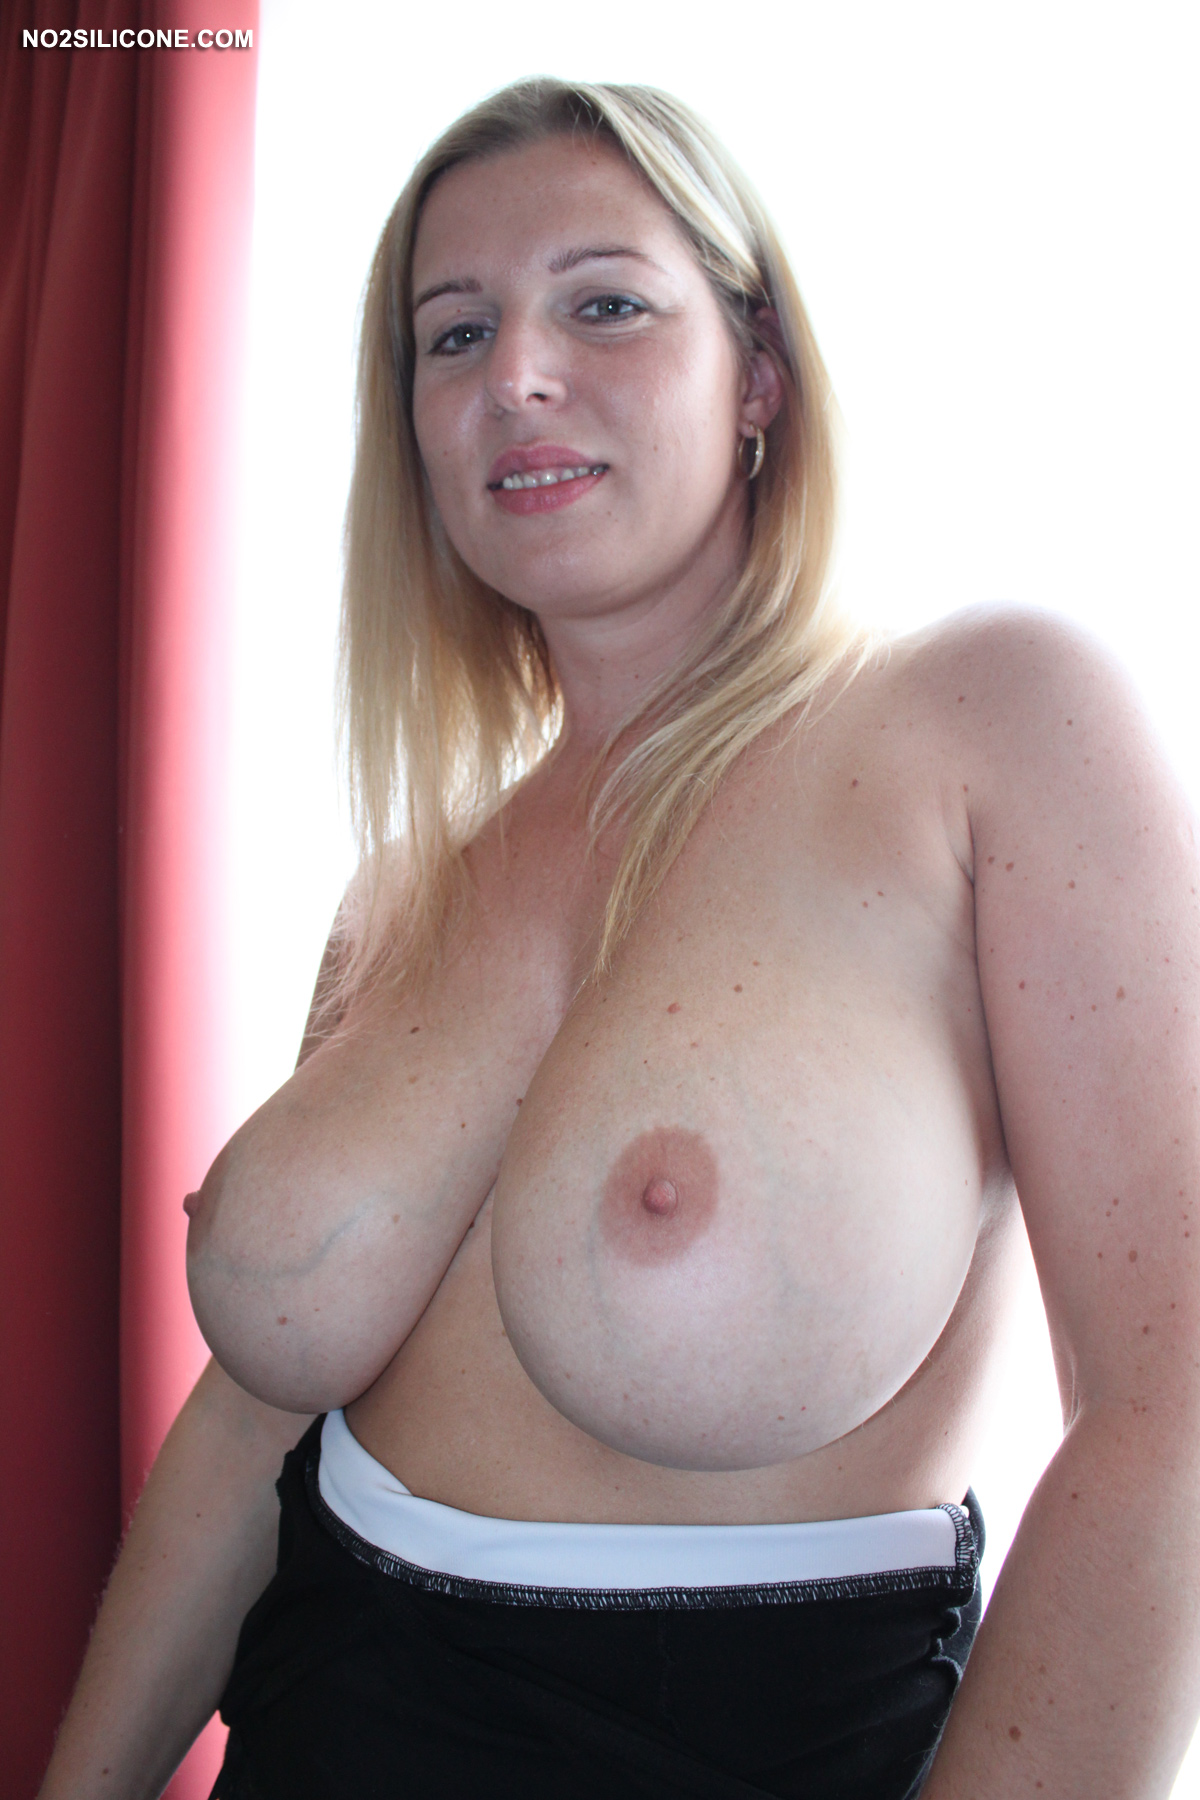 Hottest busty milf ever seen bvr 10